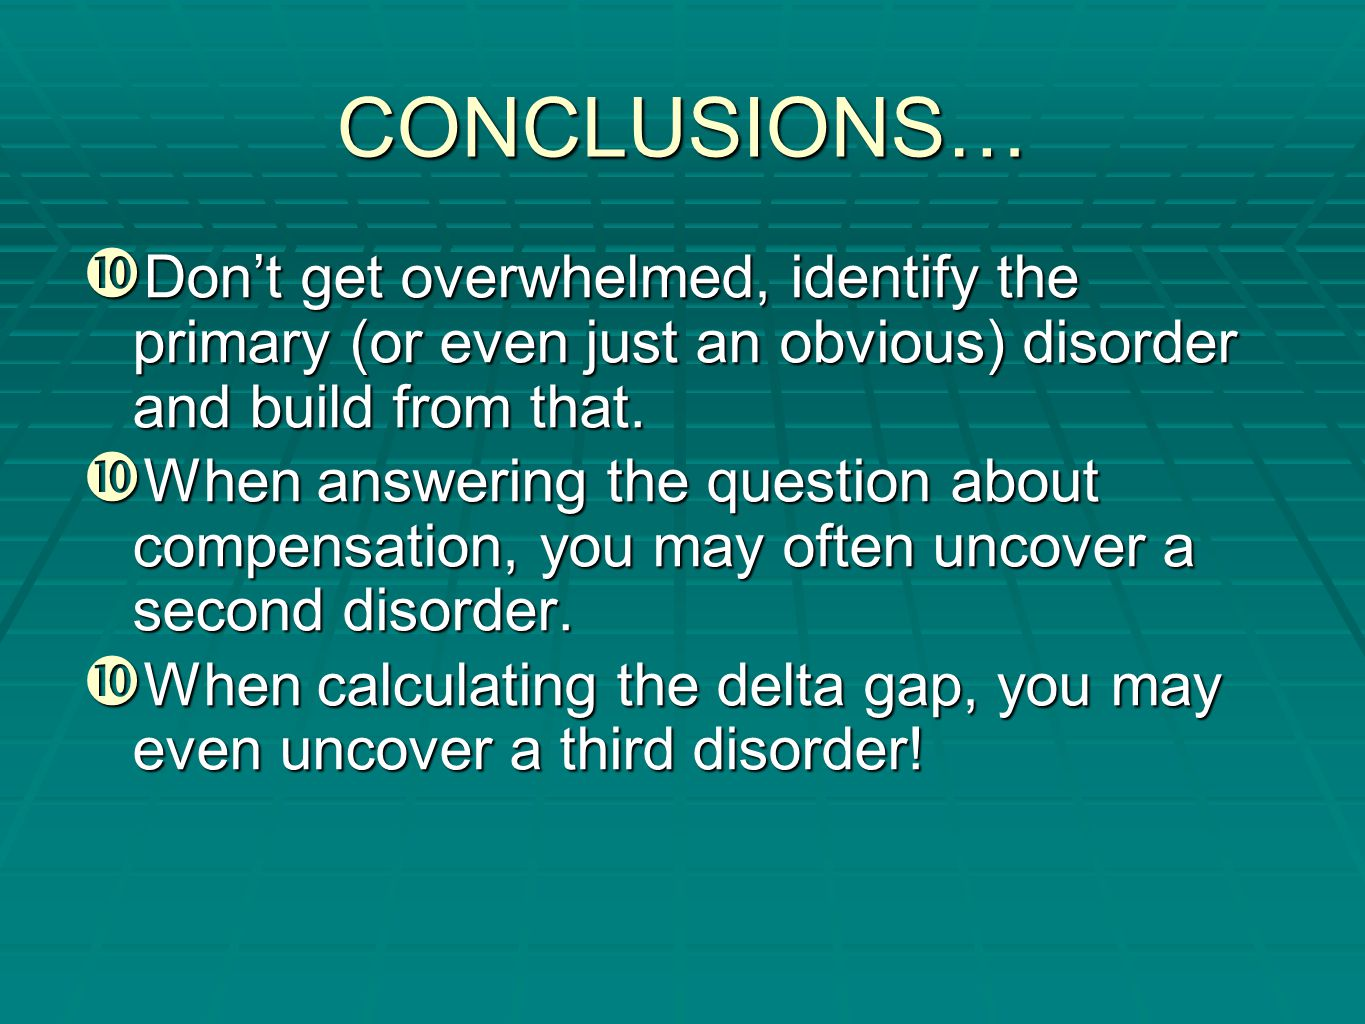 CONCLUSIONS… Don't get overwhelmed, identify the primary (or even just an obvious) disorder and build from that.